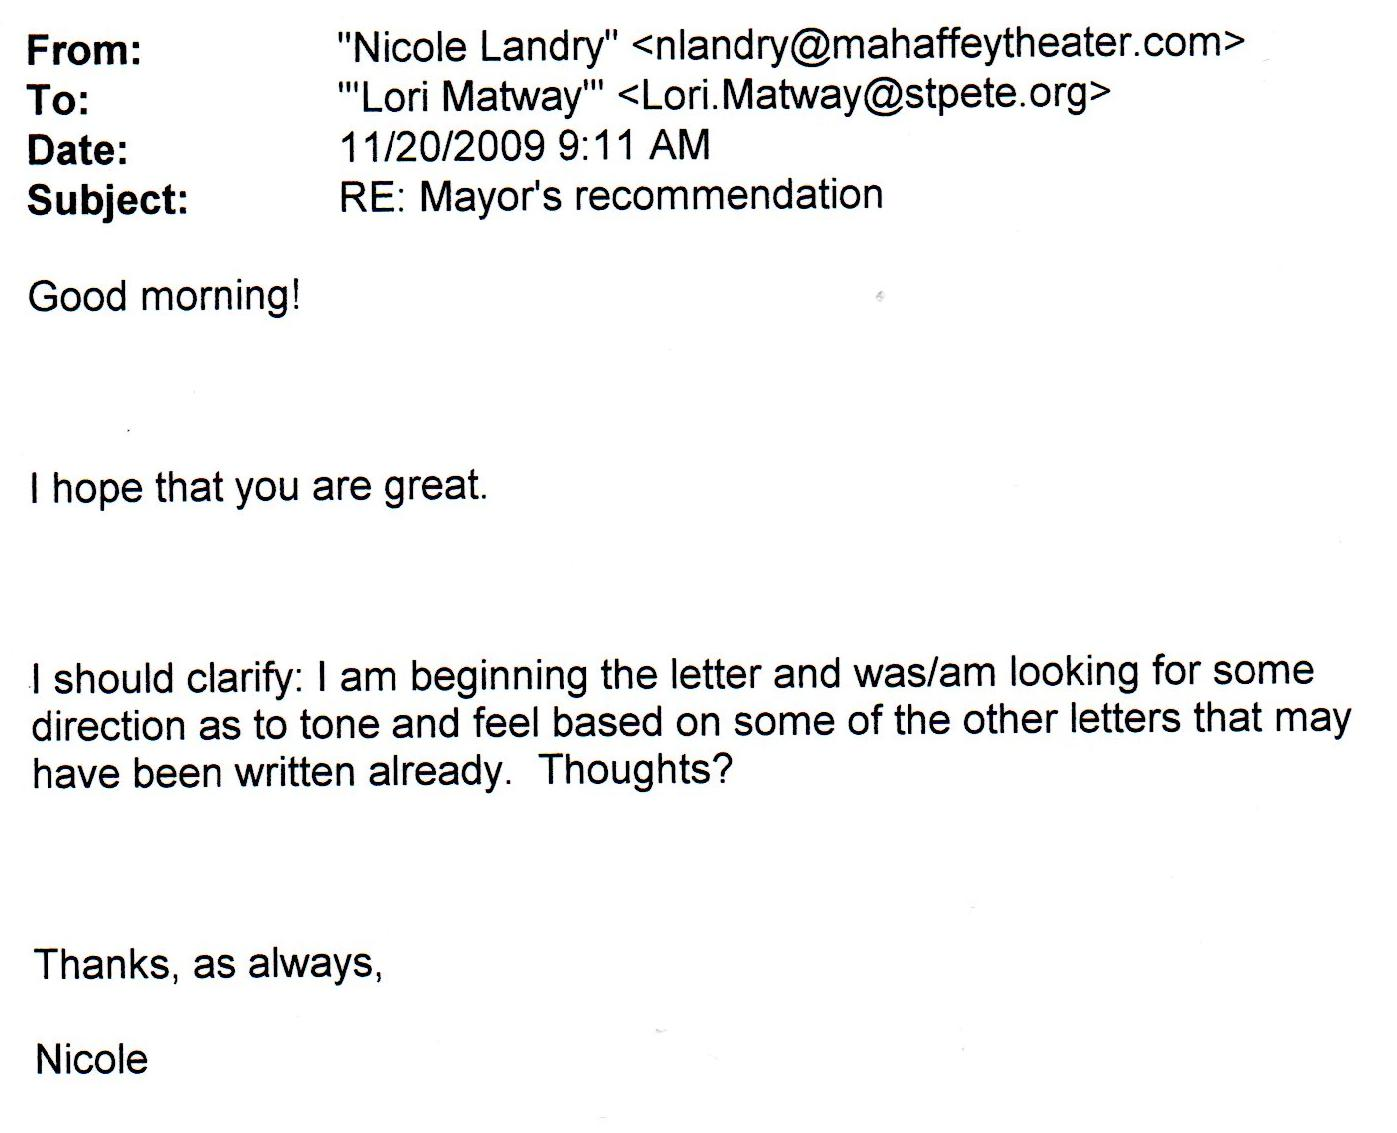 EMails Confirm City Hall Administrator Is Coordinating Letter